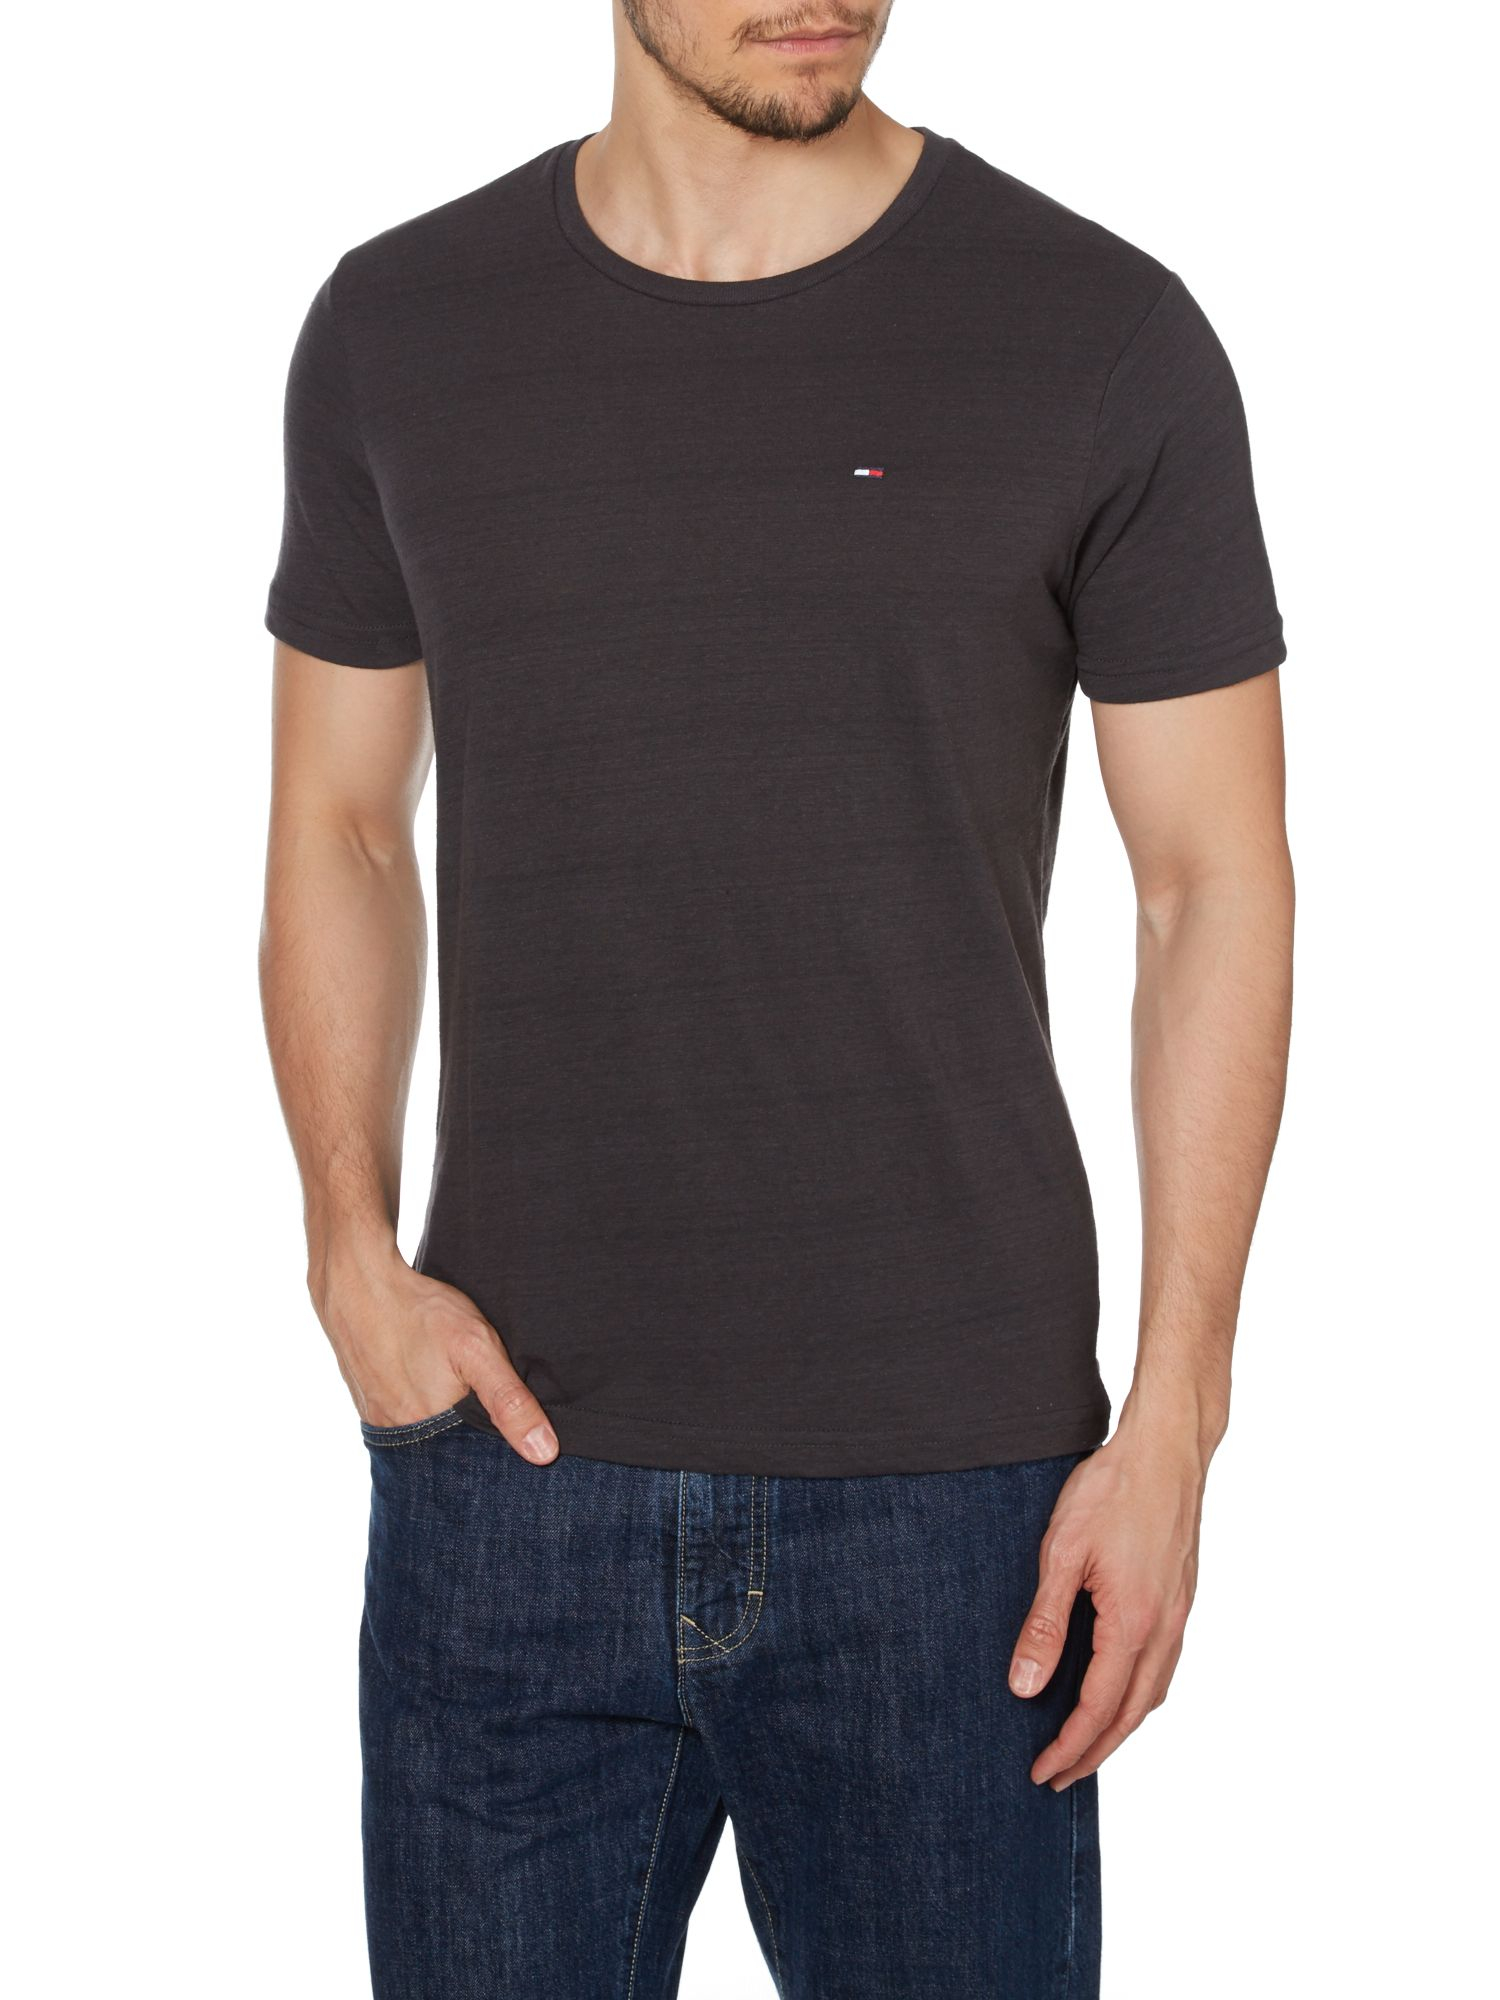 tommy hilfiger black hanson plain crew neck slim fit t shirt for men. Black Bedroom Furniture Sets. Home Design Ideas